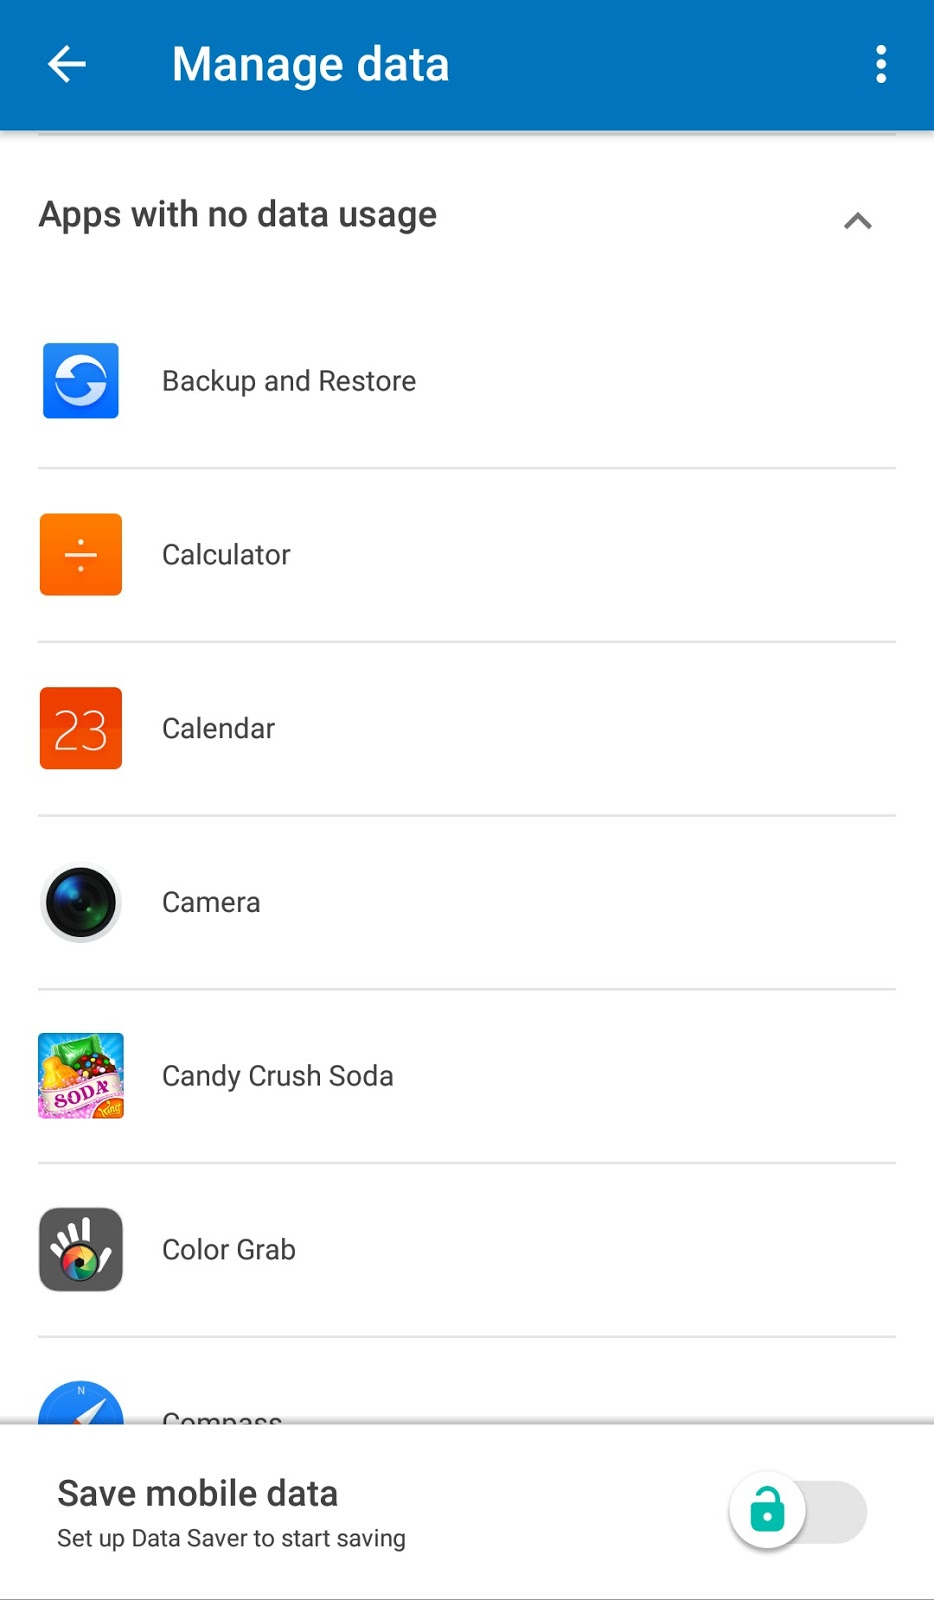 List of apps with no data usage